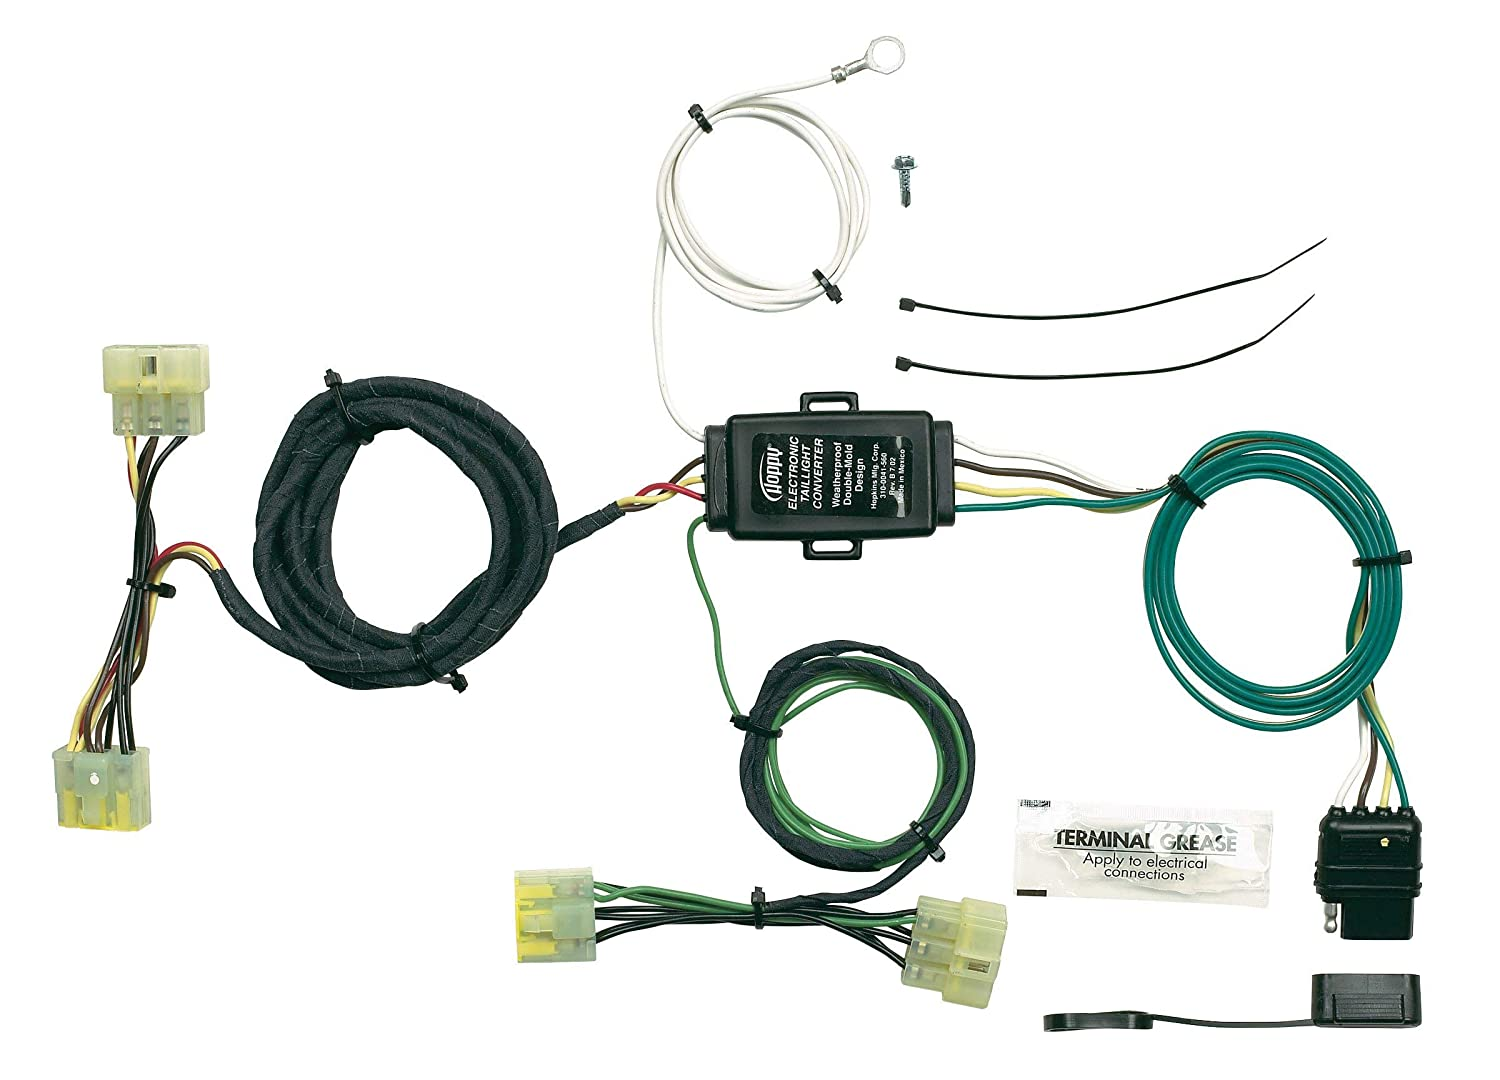 Toyota Tacoma Trailer Wiring Harness on 2003 toyota tacoma trailer wiring harness, 2007 toyota tacoma trailer wiring harness, 2005 toyota tacoma trailer wiring harness, 2006 toyota tacoma trailer wiring harness,